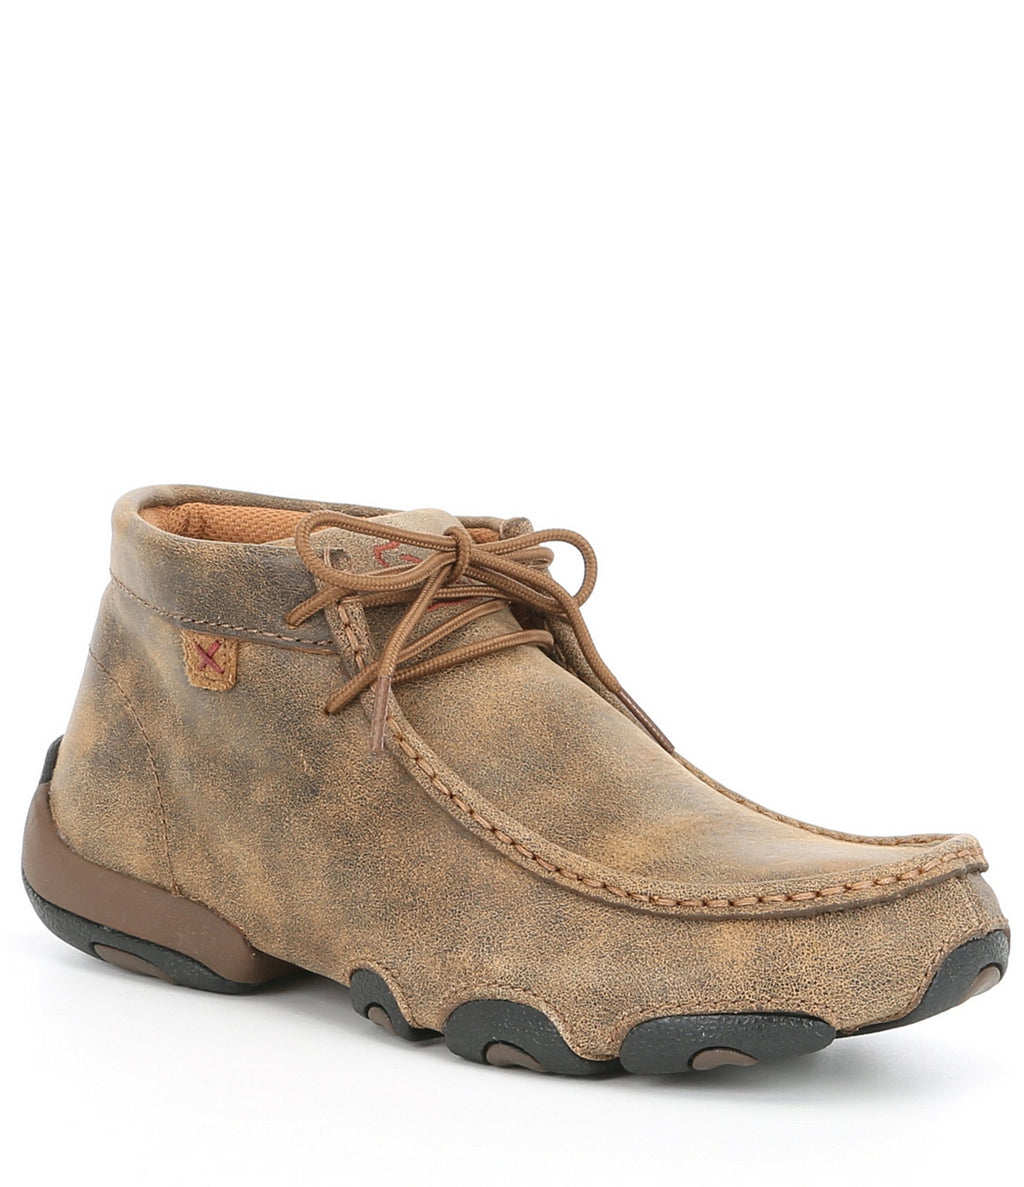 Twisted X Men's Original Chukka Driving Moc - The Tillie Rose Boutique